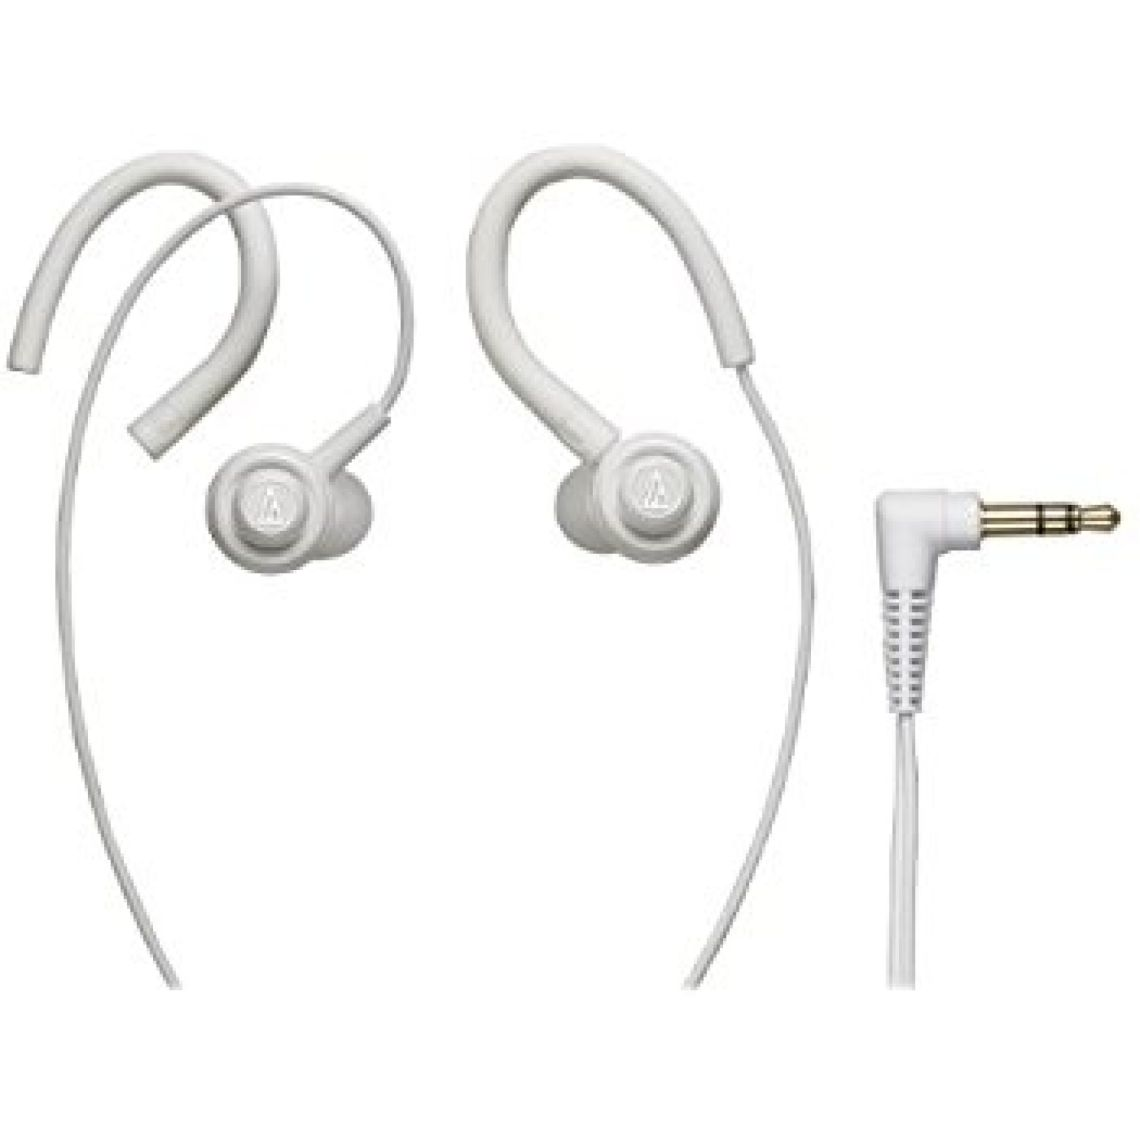 Amazon.com: Audio Technica ATHCOR150WH In-Ear Headphones, White: Home Audio & Theater